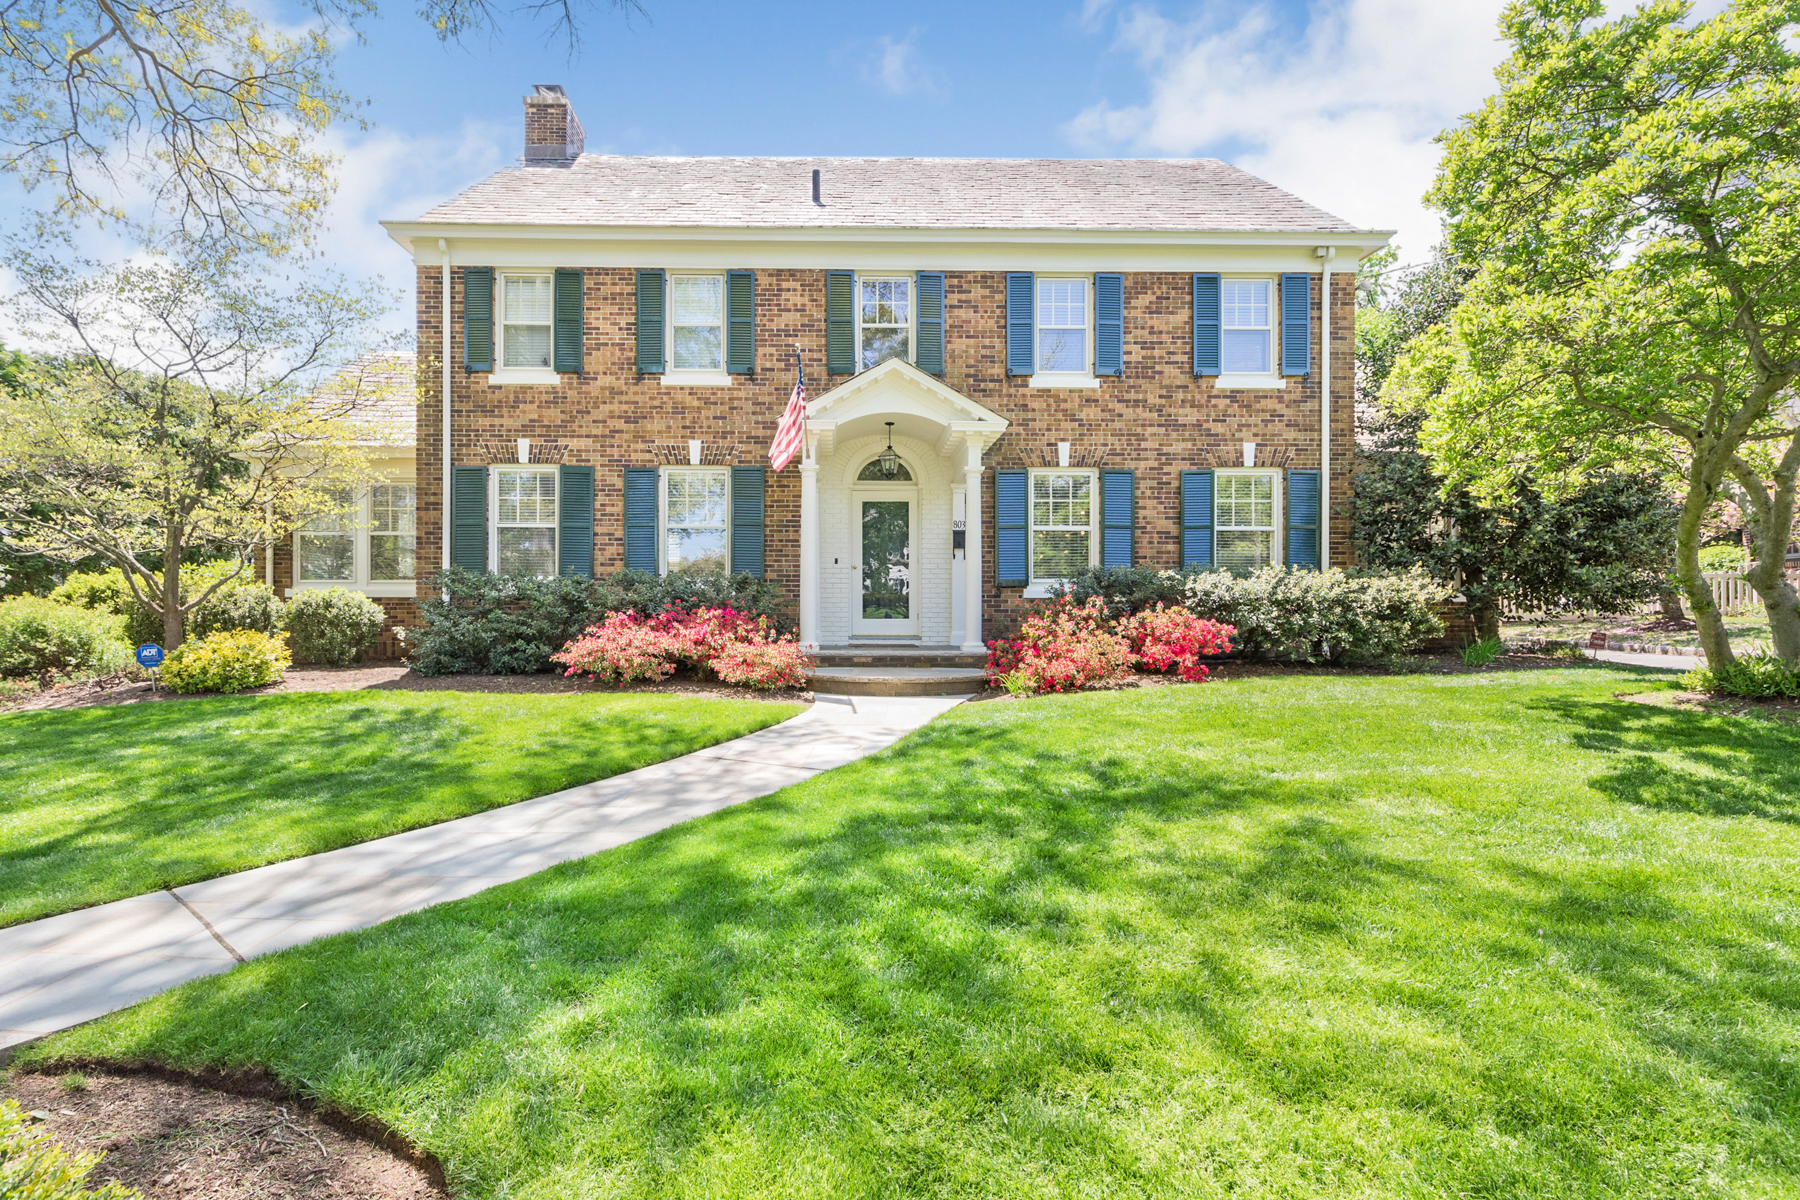 Single Family Homes for Sale at Gracious Colonial 803 Cedar Terrace Westfield, New Jersey 07090 United States